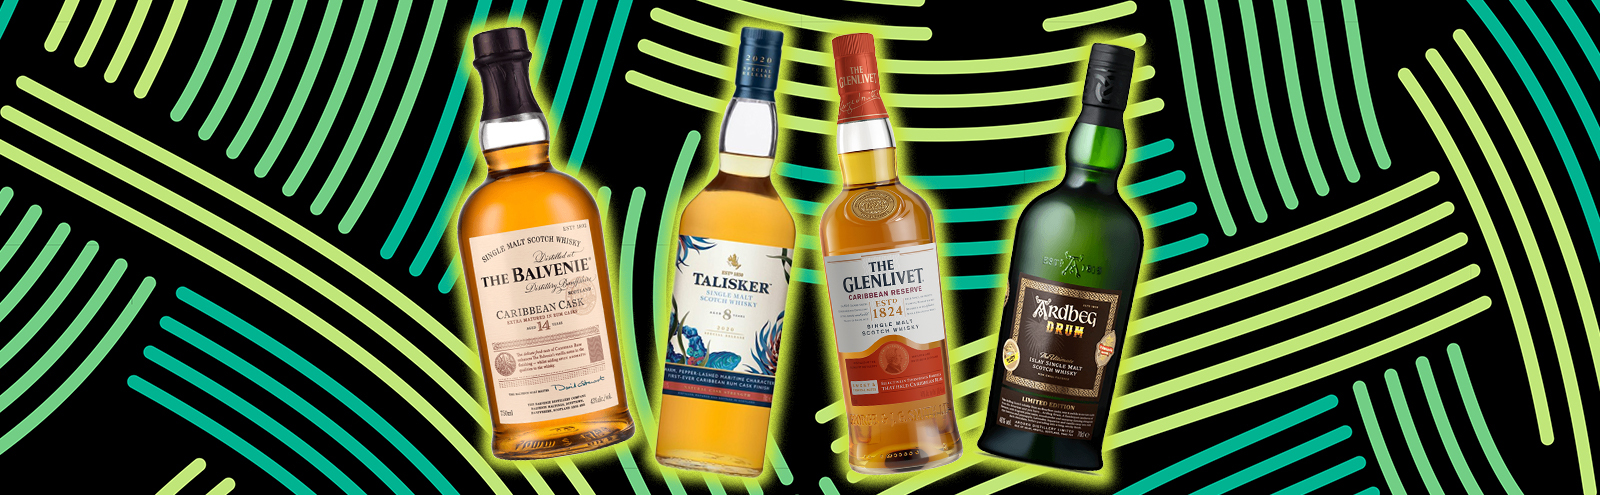 These Rum-Finished Scotches Bring A Touch Of The Tropics To Scotland